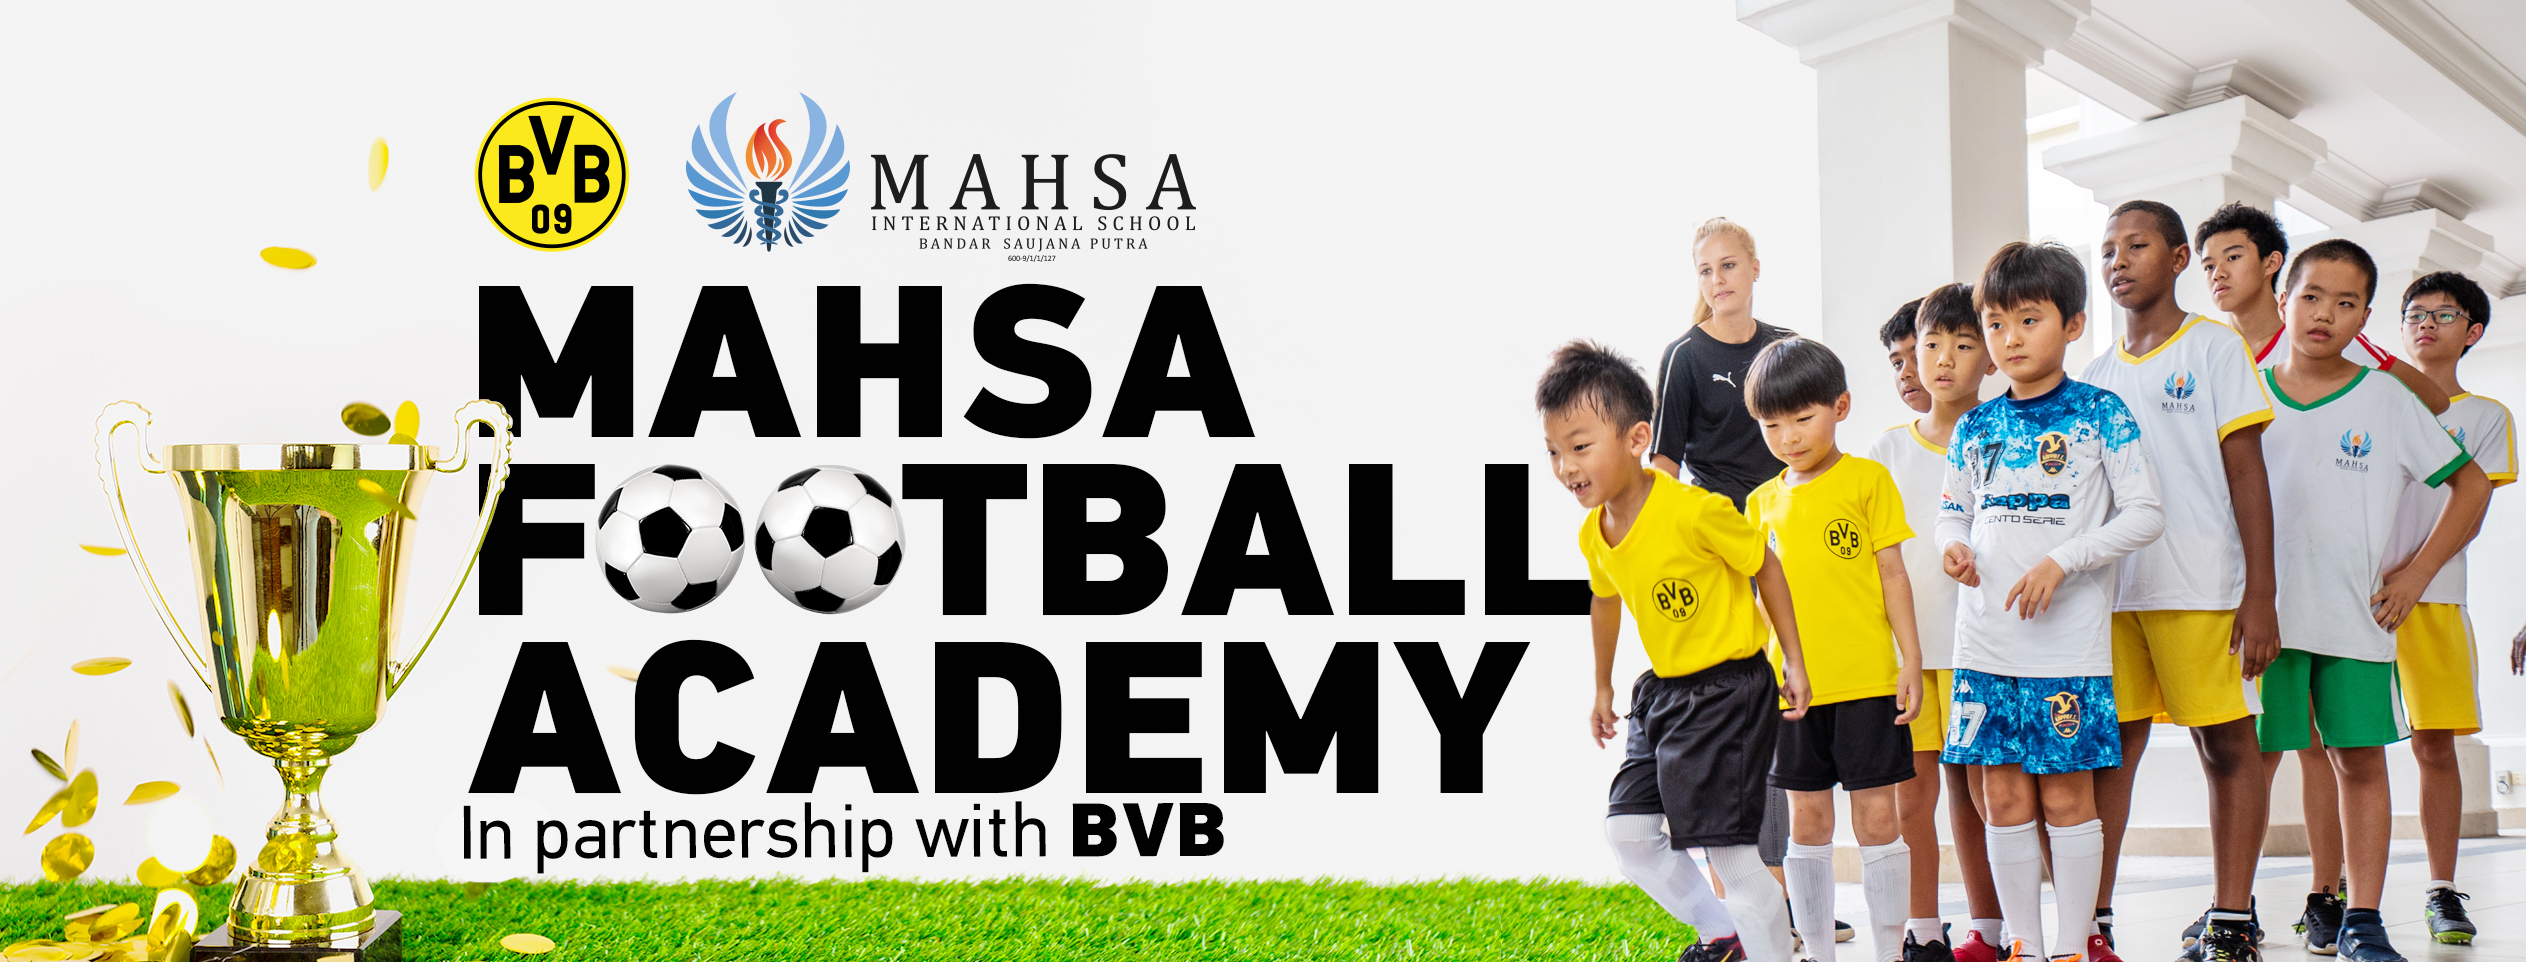 Mahsa Football Academy